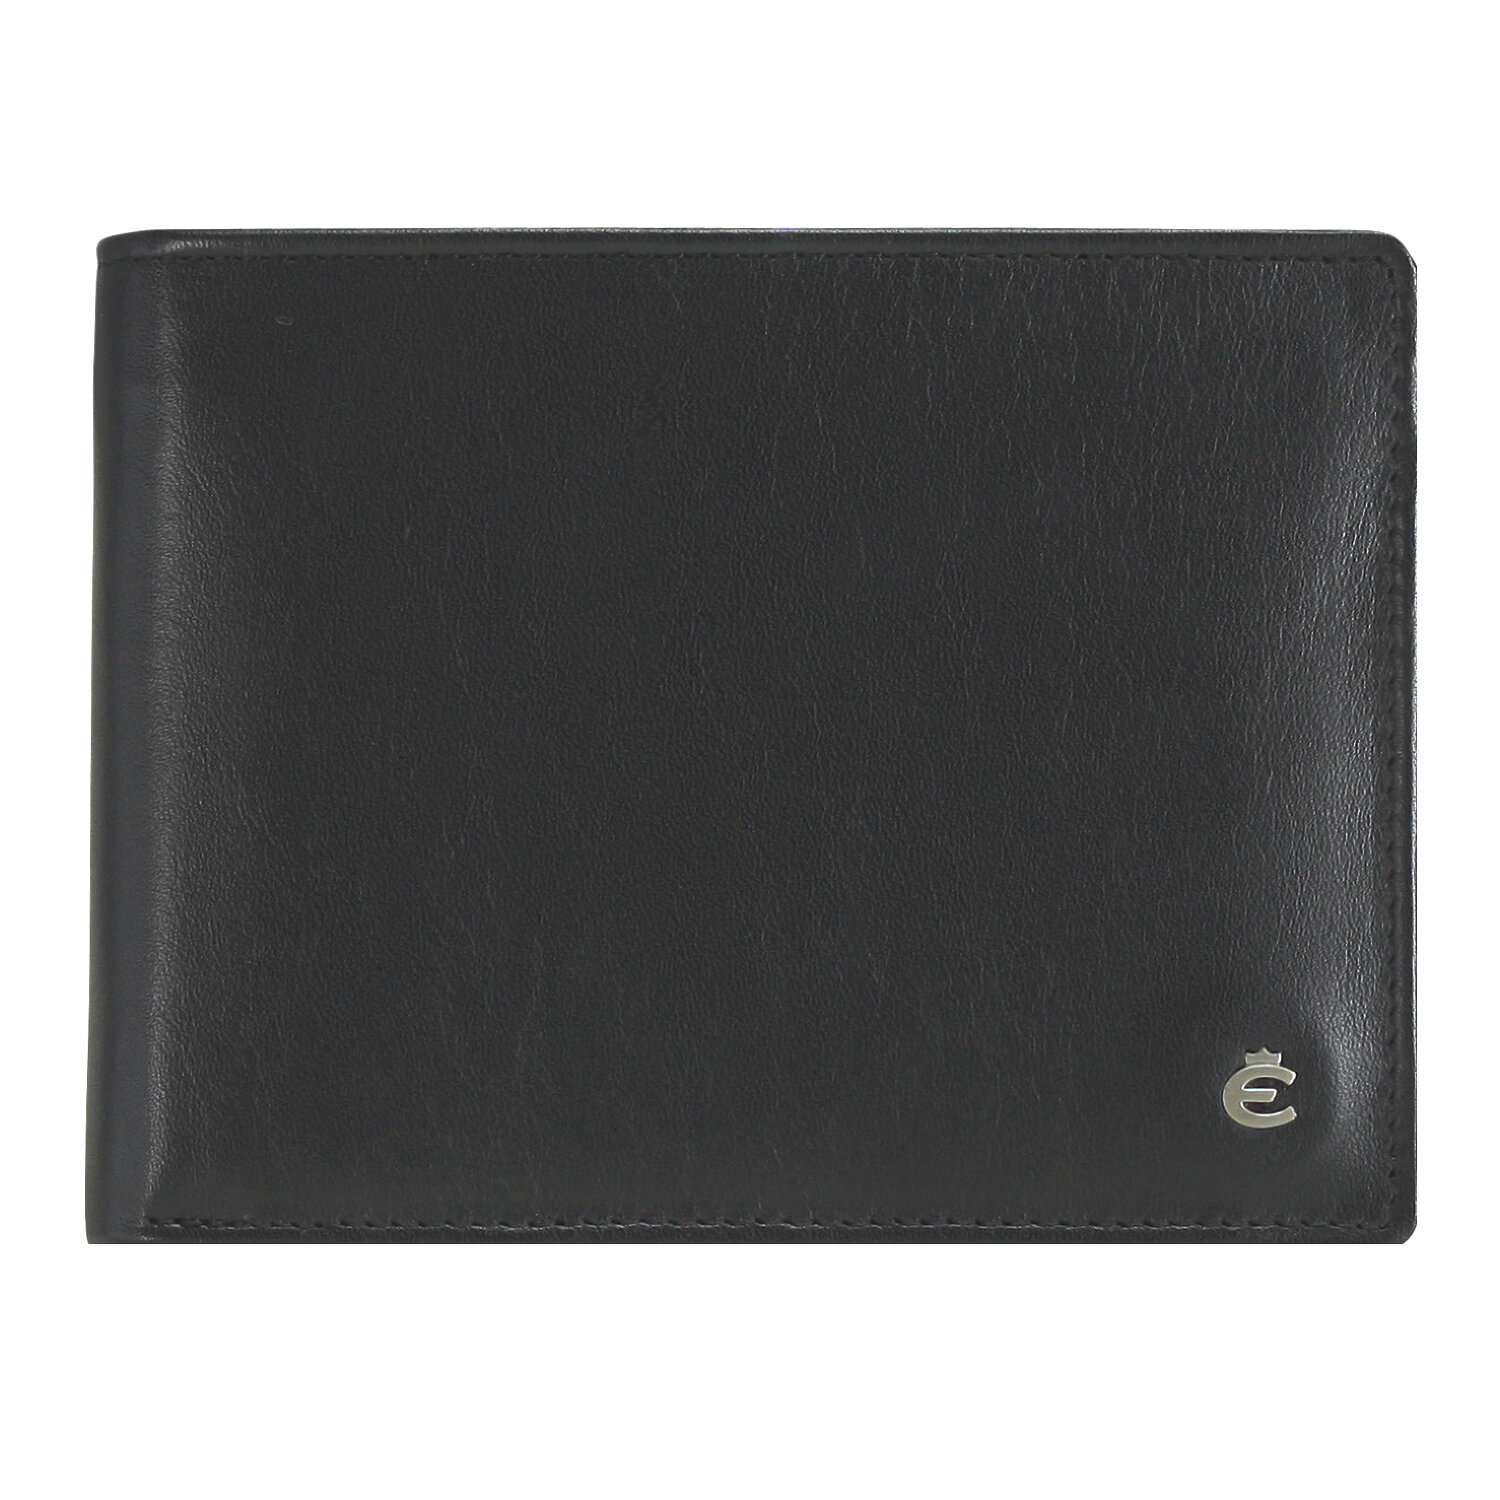 mywalit Large Flap Porte-monnaie cuir 12 cm black smokey grey